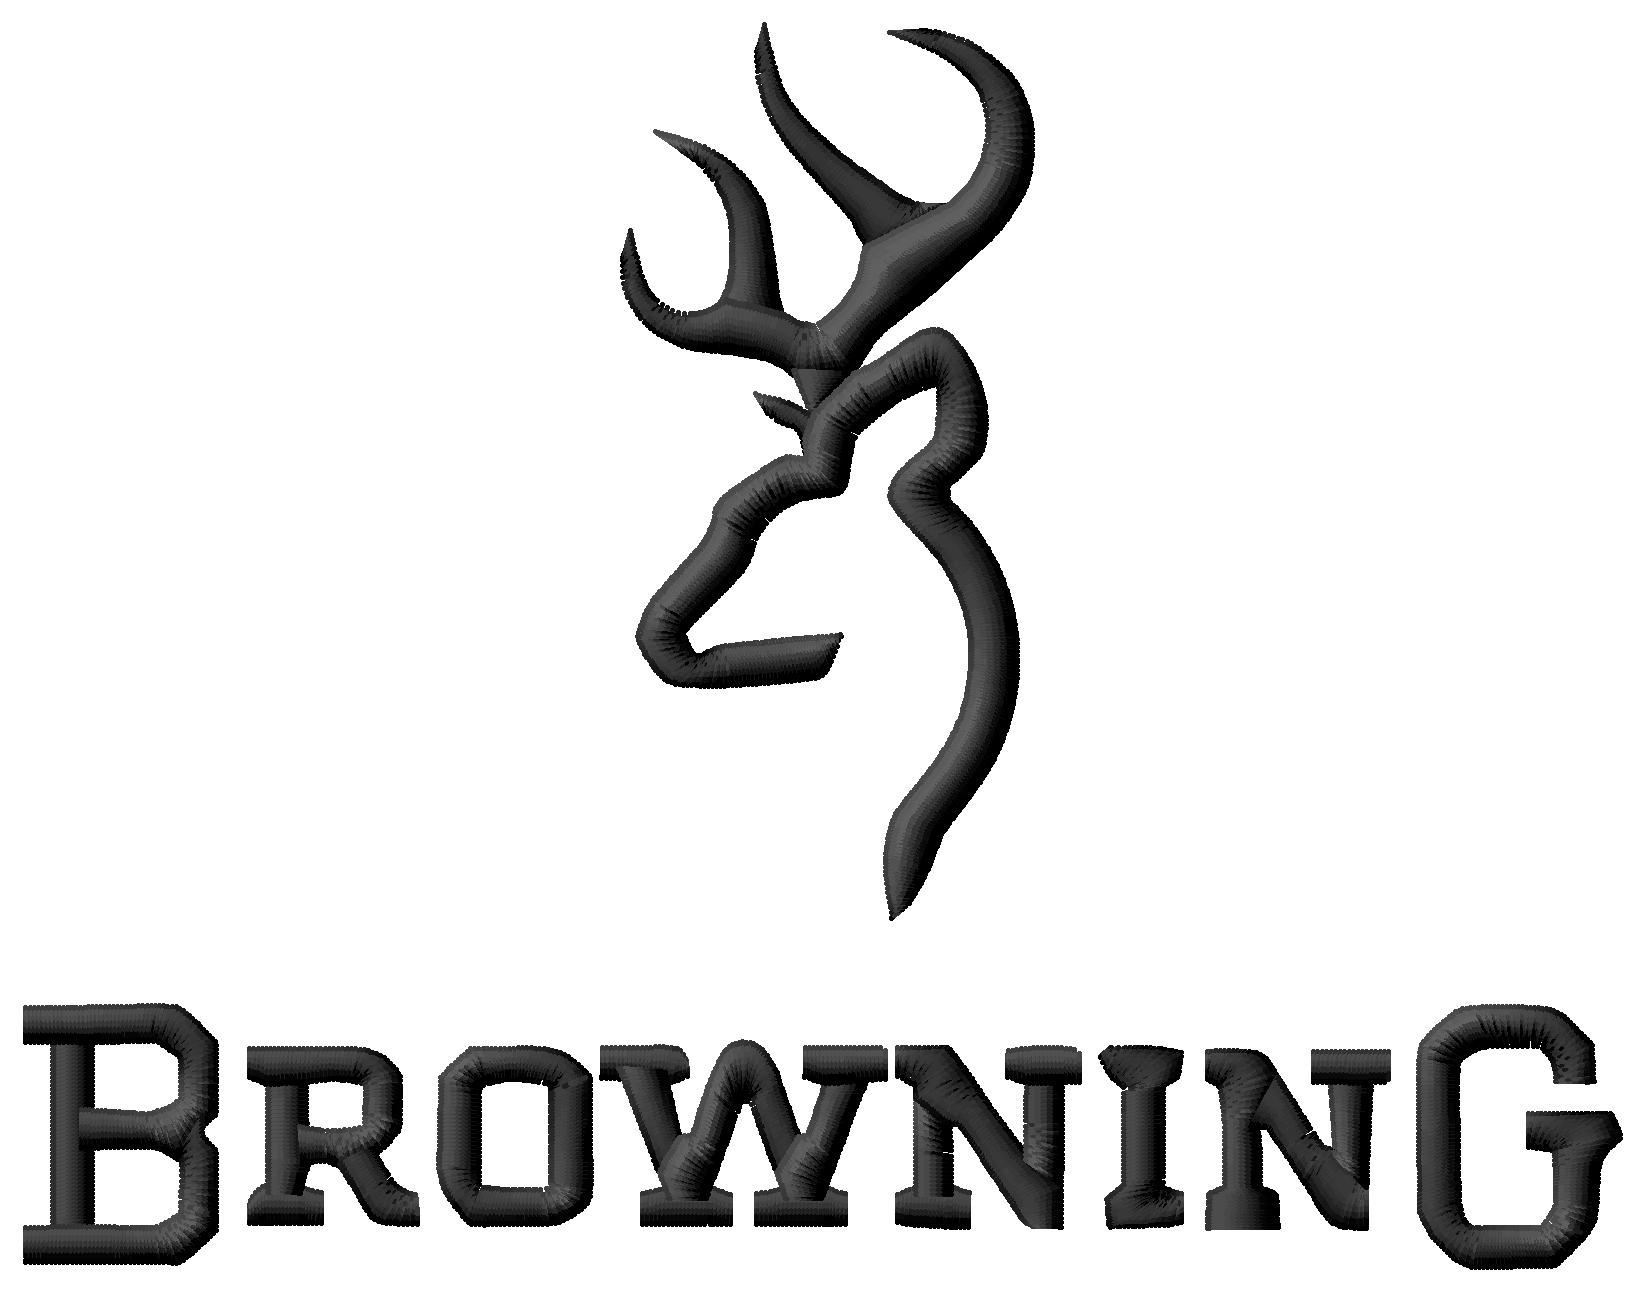 Browning logo clipart.